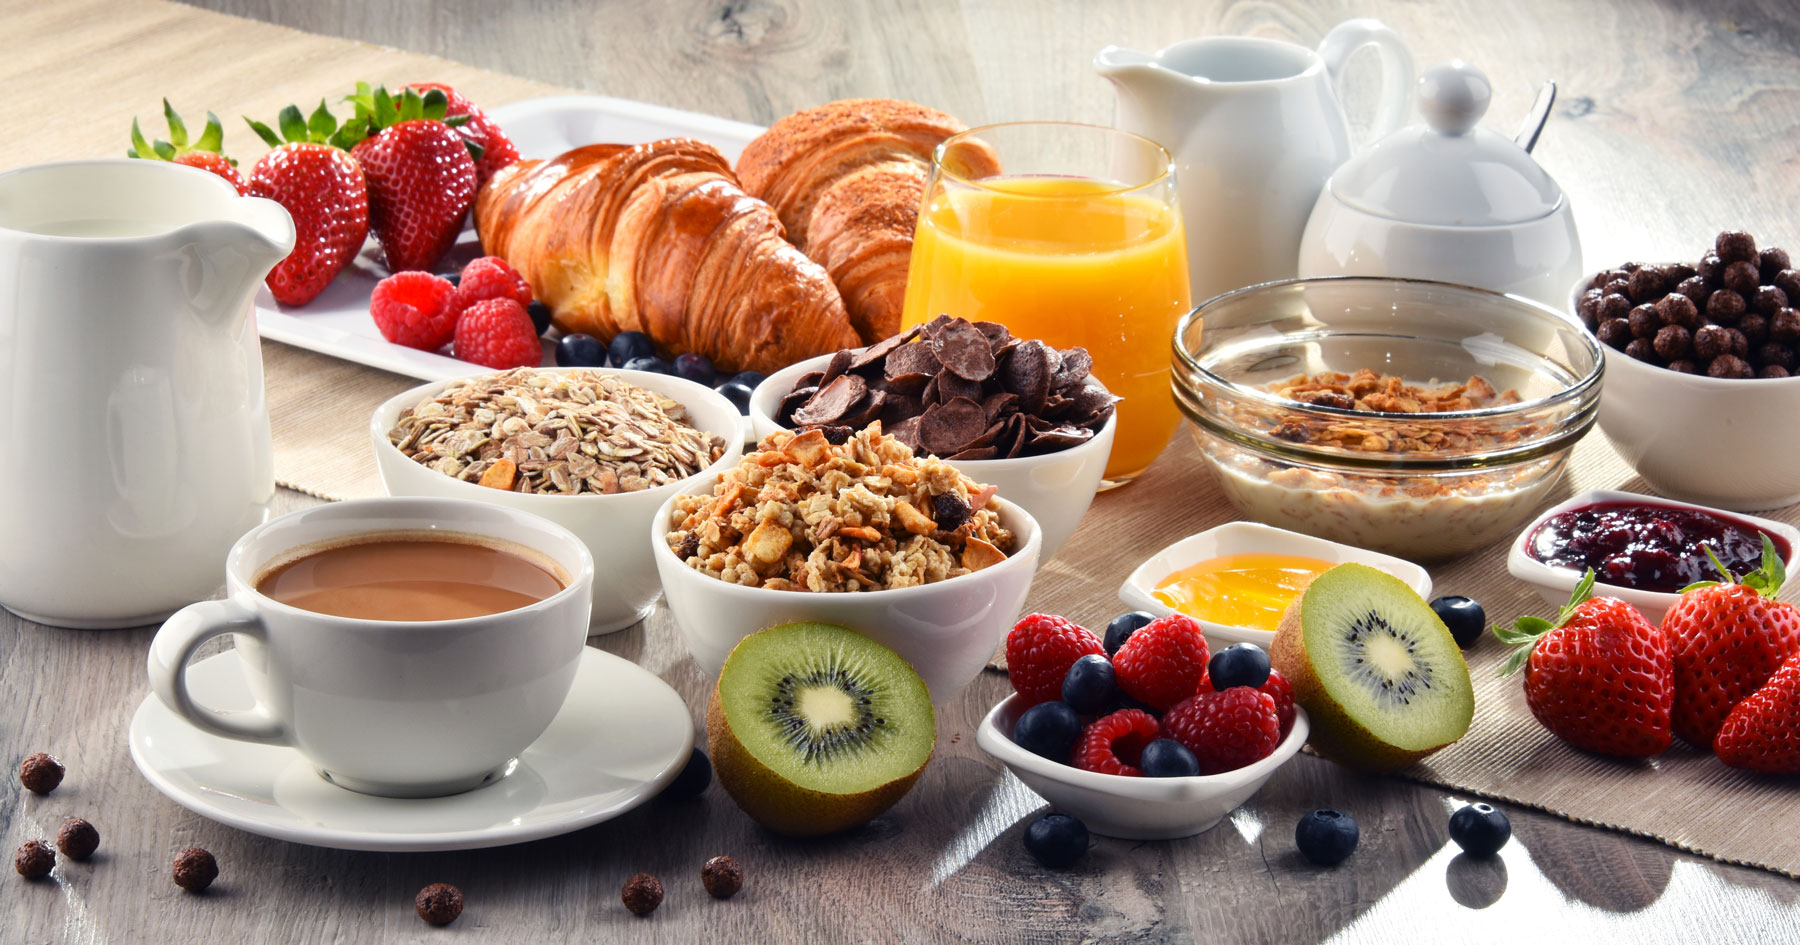 Offering the flavors diners want at breakfast   Restaurant Business Online